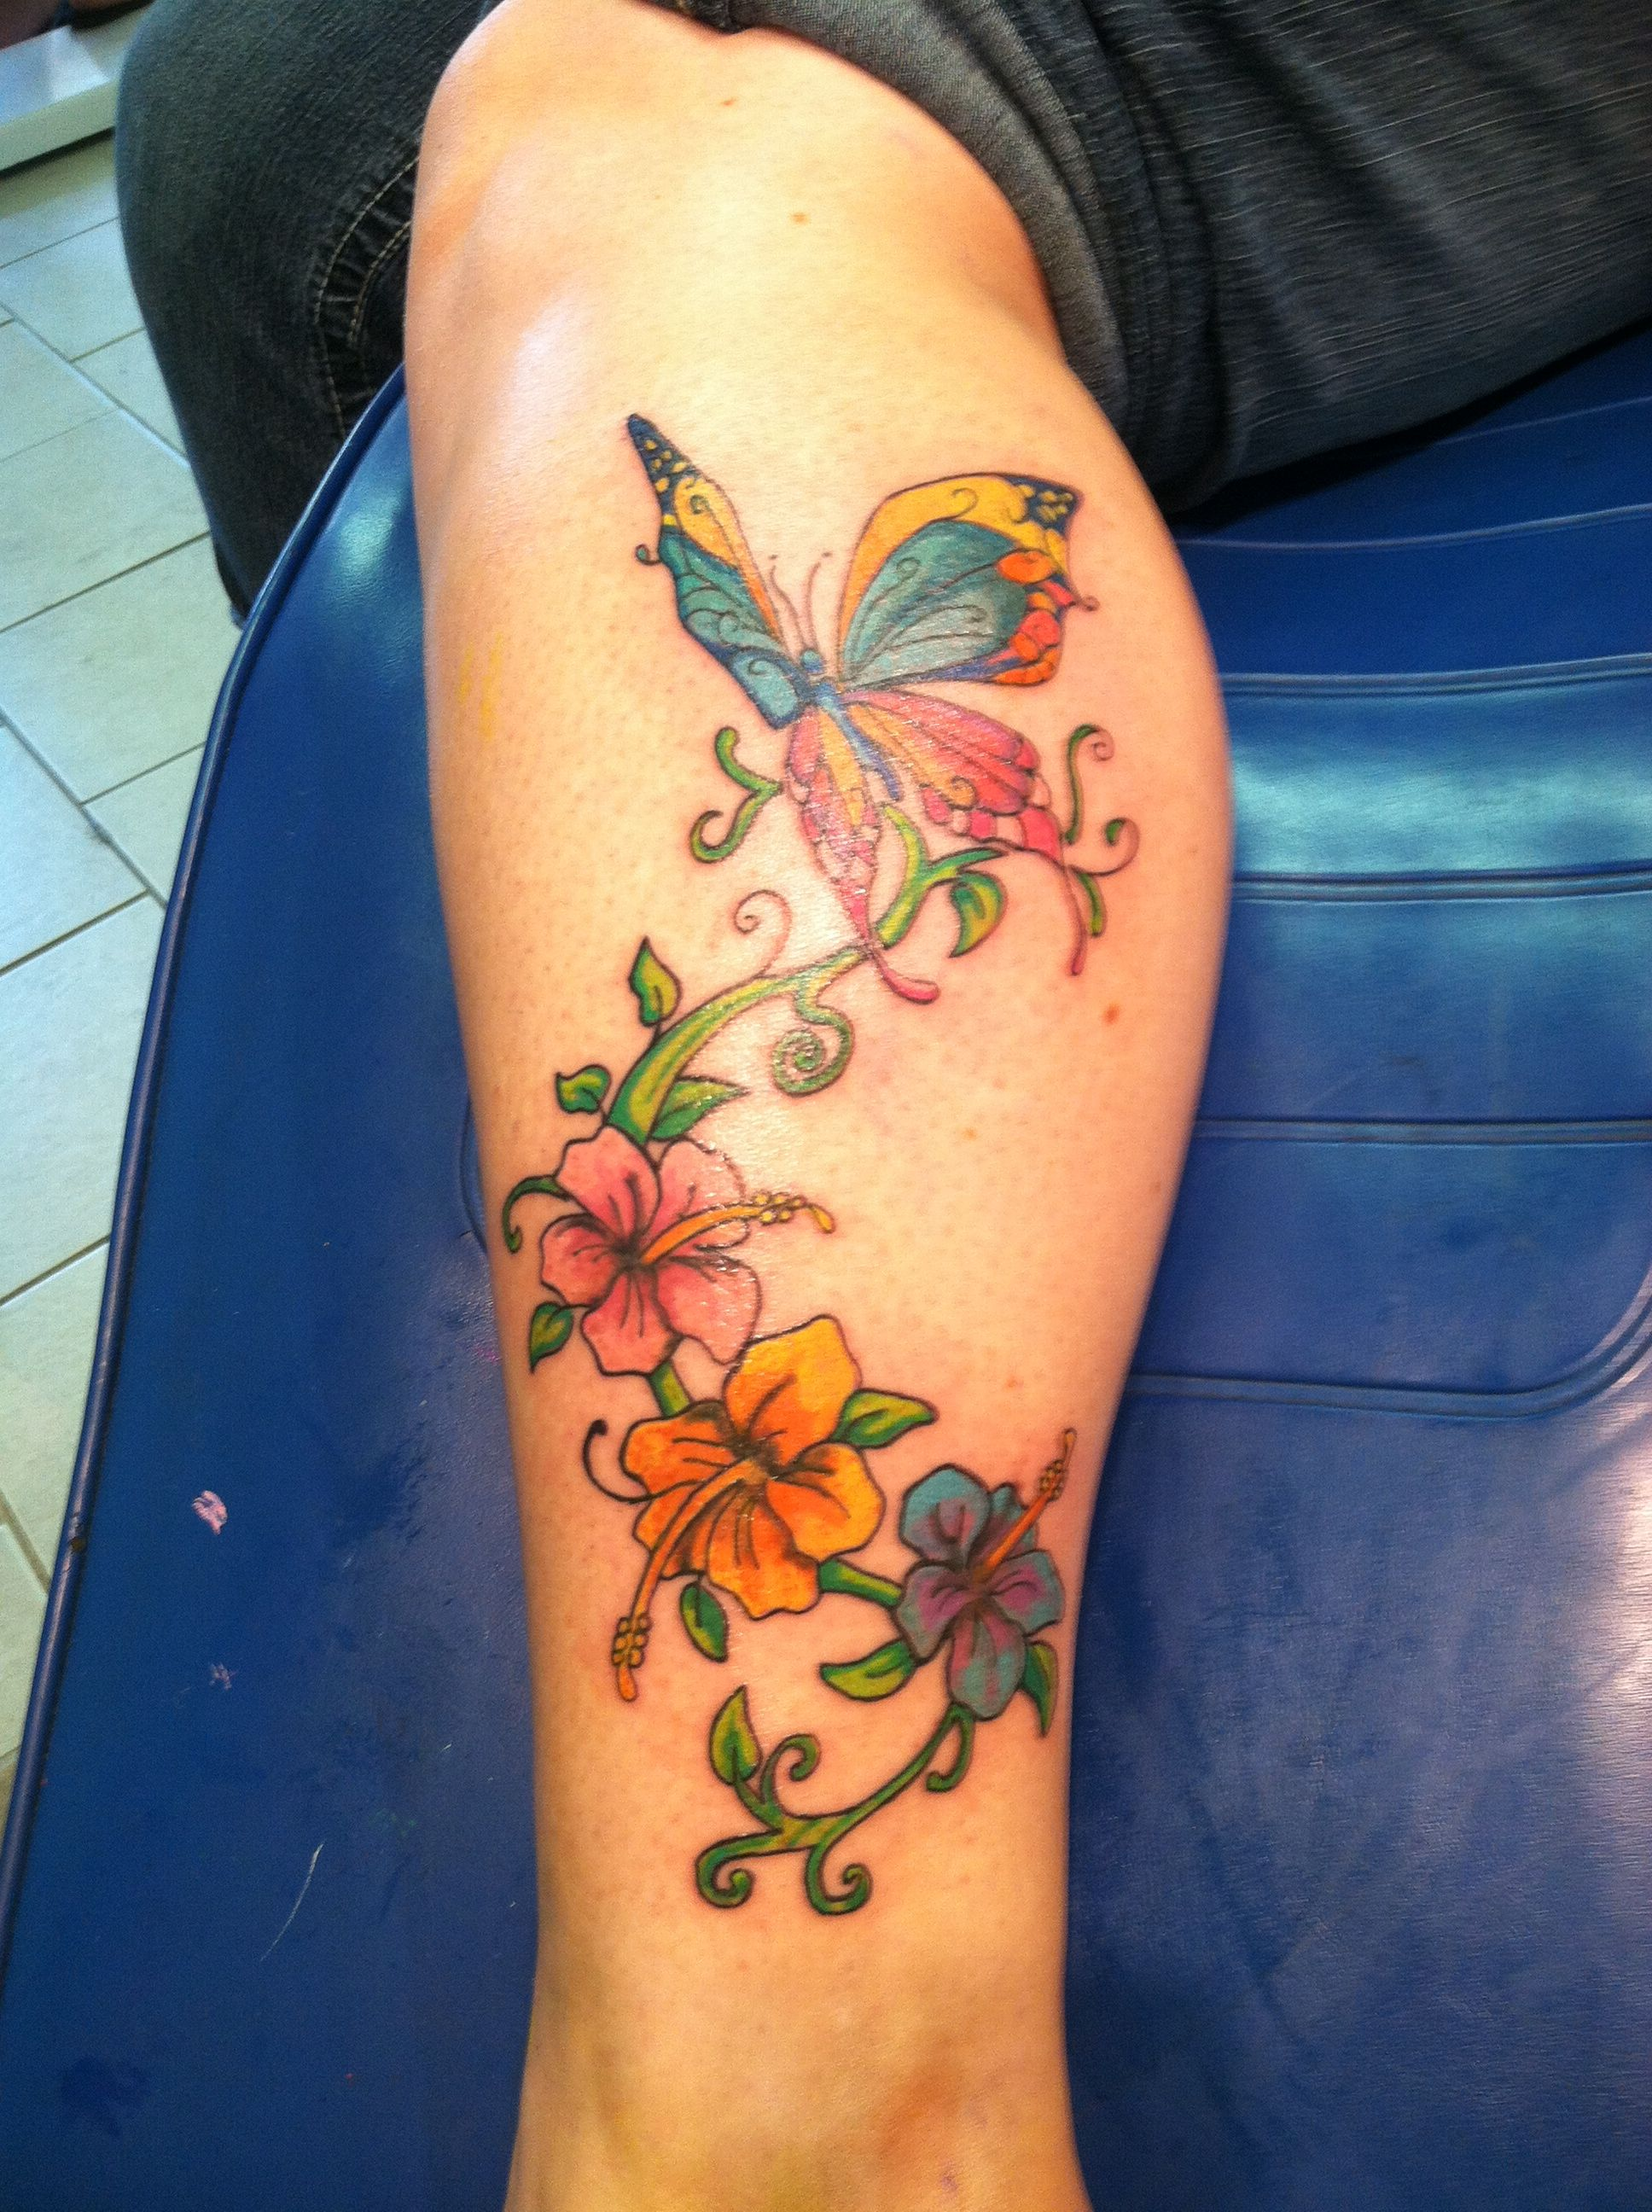 Flower Leg Tattoos: #tattoo #butterfly #flowers #color #leg #calf #beautiful